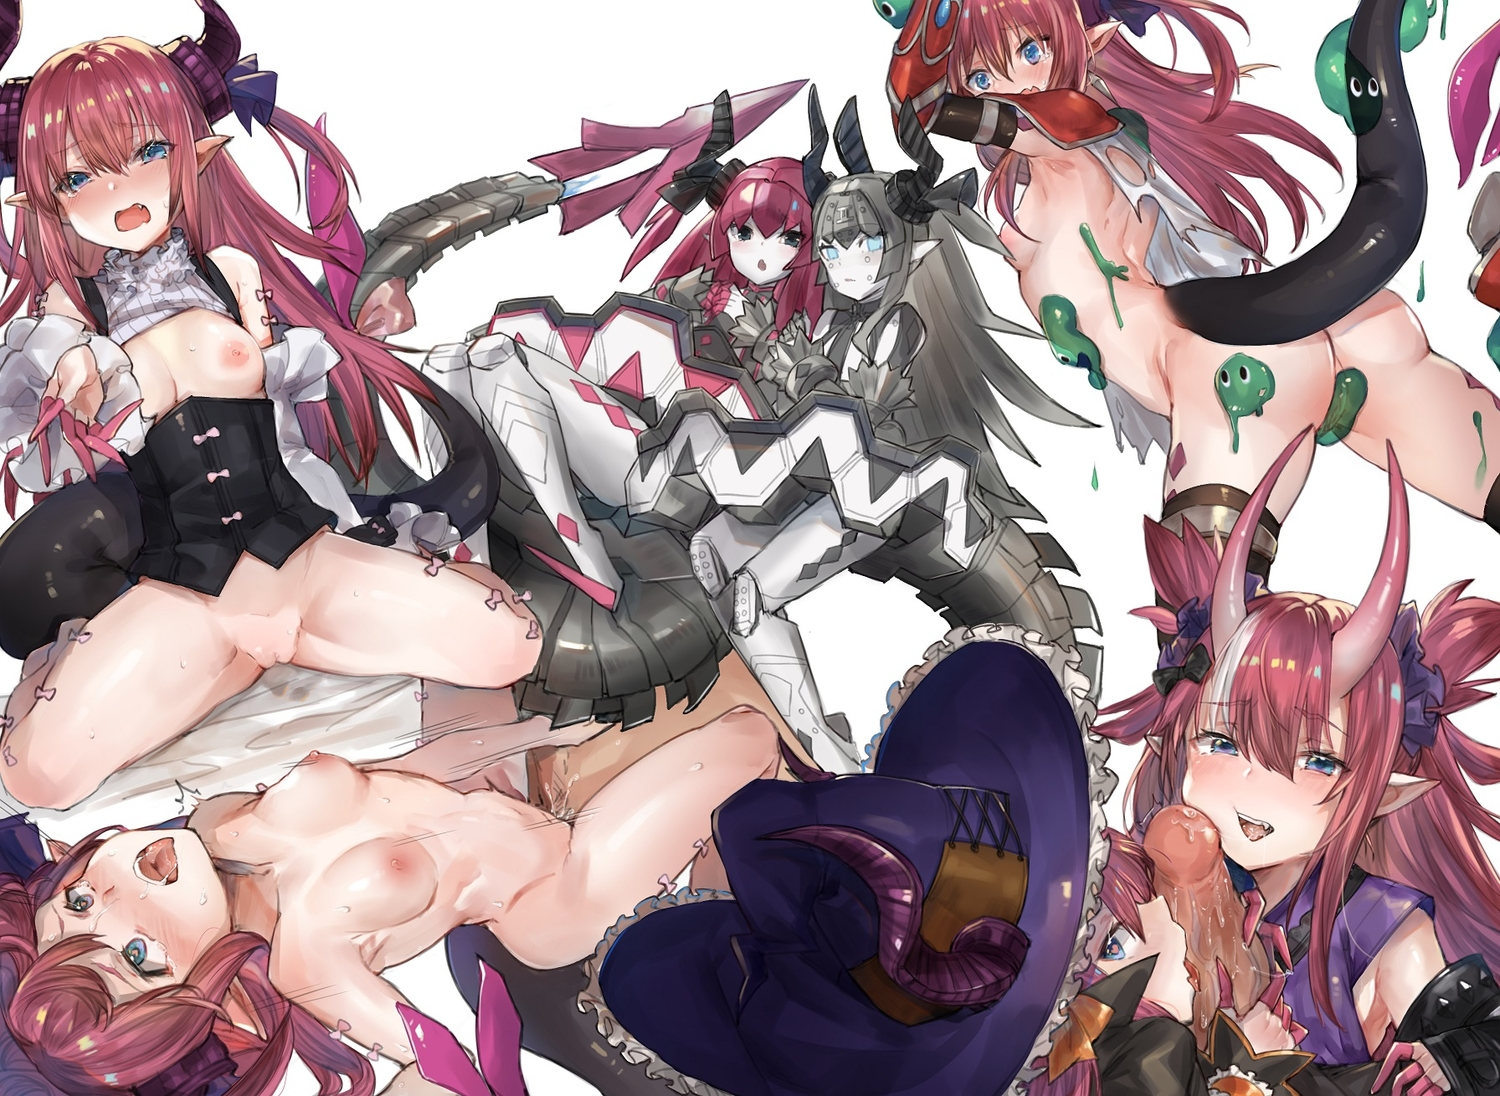 ass blue_eyes blush breasts corset elizabeth_bathory_(fate) fang fate/grand_order fate_(series) fellatio hat horns long_hair navel nipples nude penis pimemomo pussy red_hair robot sex tail uncensored witch_hat